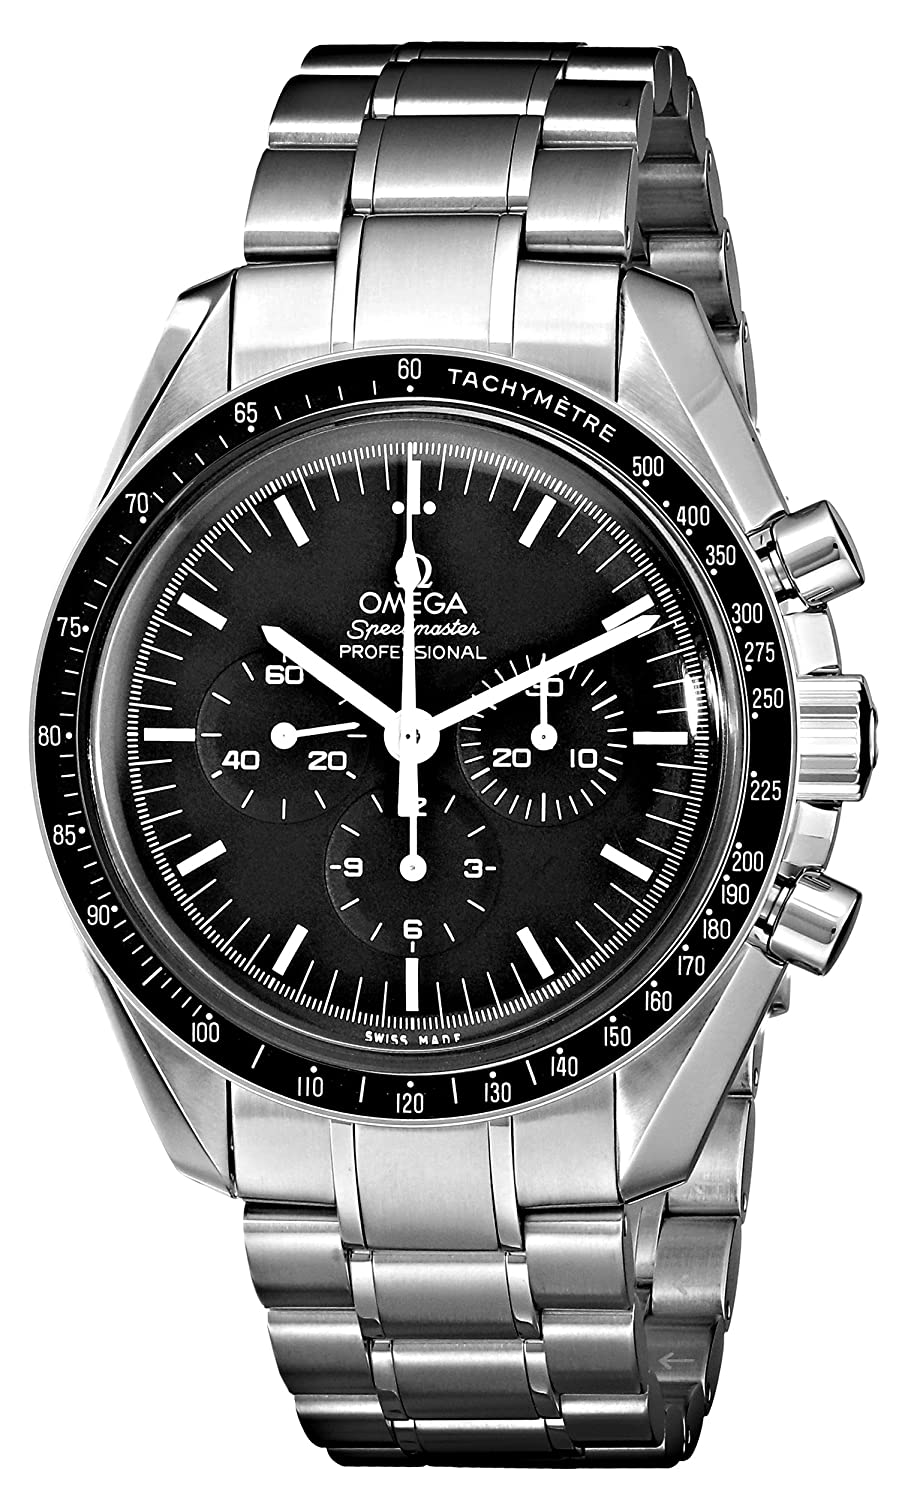 0c20c47df563 Amazon.com  Omega Men s 3570.50.00 Speedmaster Professional Watch with  Stainless Steel Bracelet  Omega  Watches